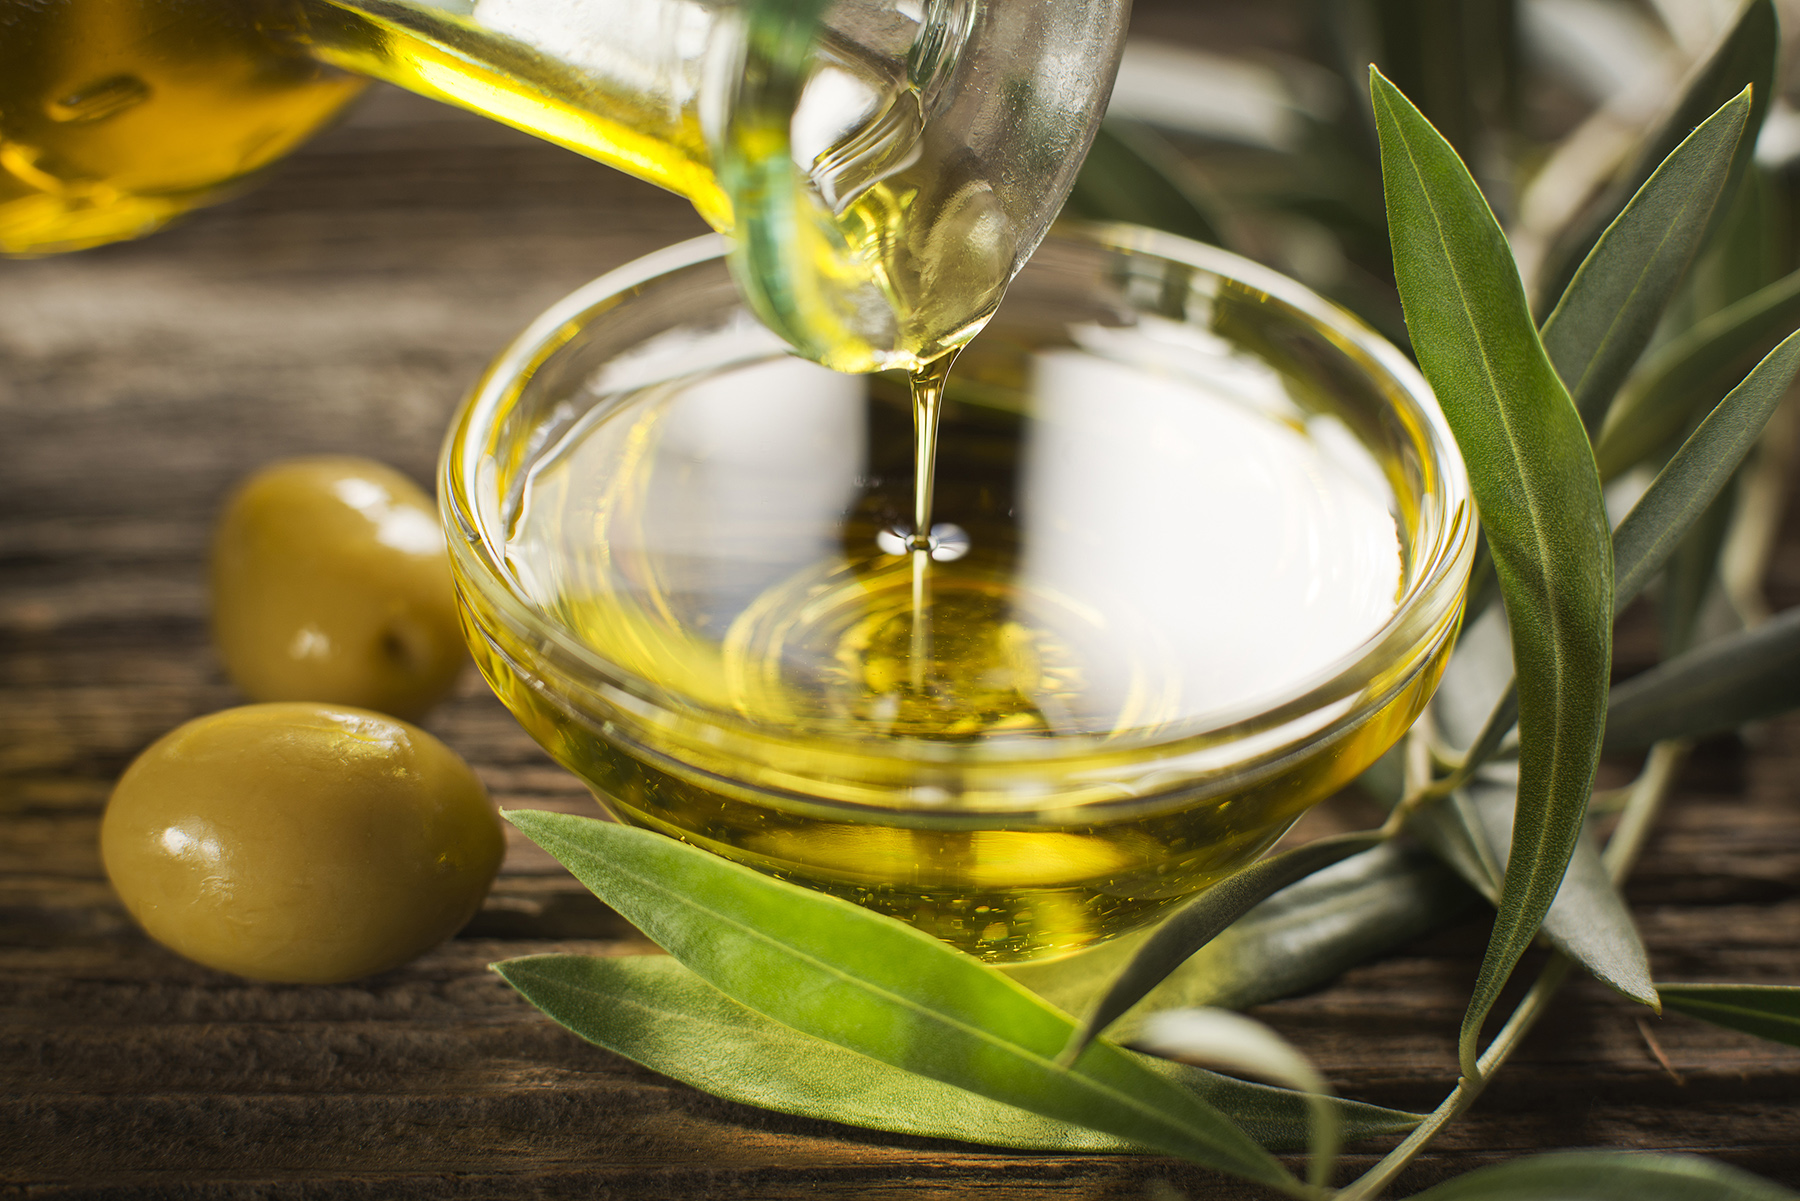 Olive Oil: Benefits and Importance in the Cretan Diet